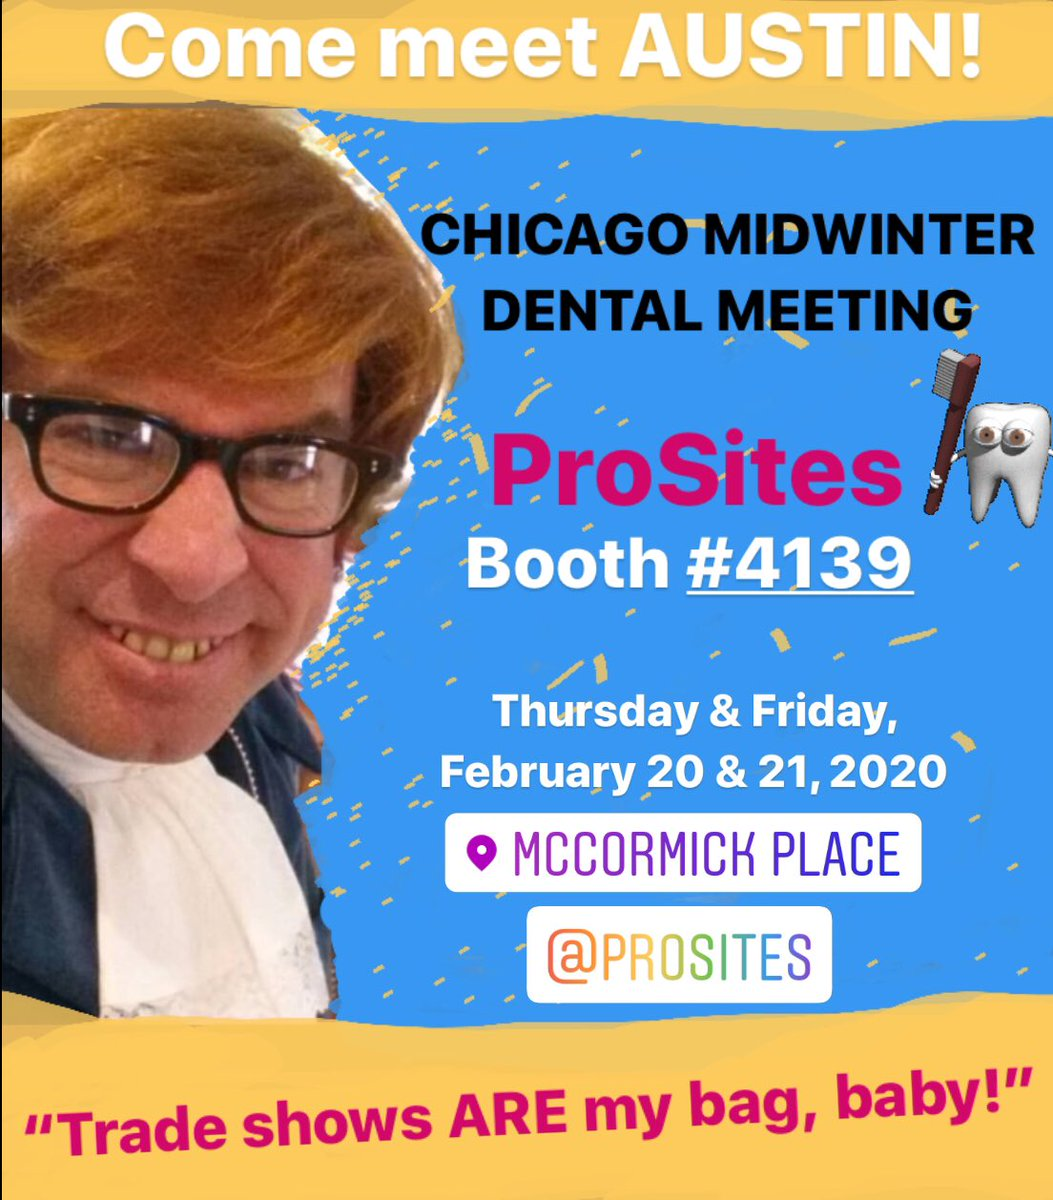 Yeah, baby, yeah! I'm headed to the Windy City later this week! Why not invite me to me the HIT of YOUR next trade show appearance? #austinpowers #austinpowersimpersonator #austinpowerslookalike #RichardHalpern #celebrityimpersonator #celebritylookalike #tradeshow #eventpic.twitter.com/QCNhuFnDat